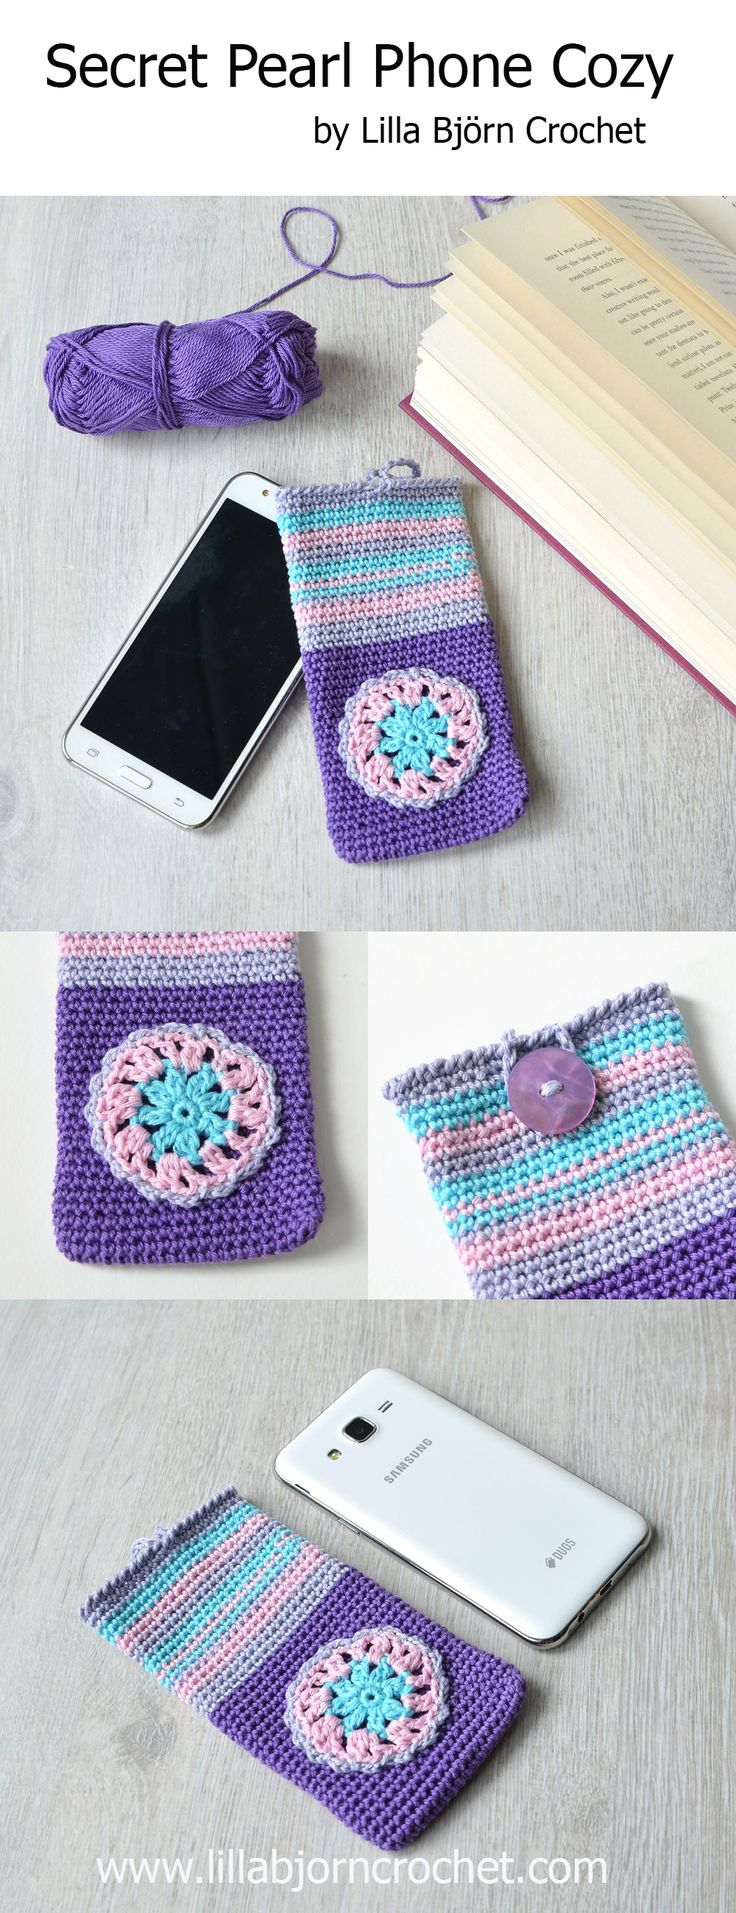 Best 25 crochet phone cover ideas on pinterest crochet phone very easy to follow pattern aimed to beginners usinf it you can crochet a new bankloansurffo Image collections